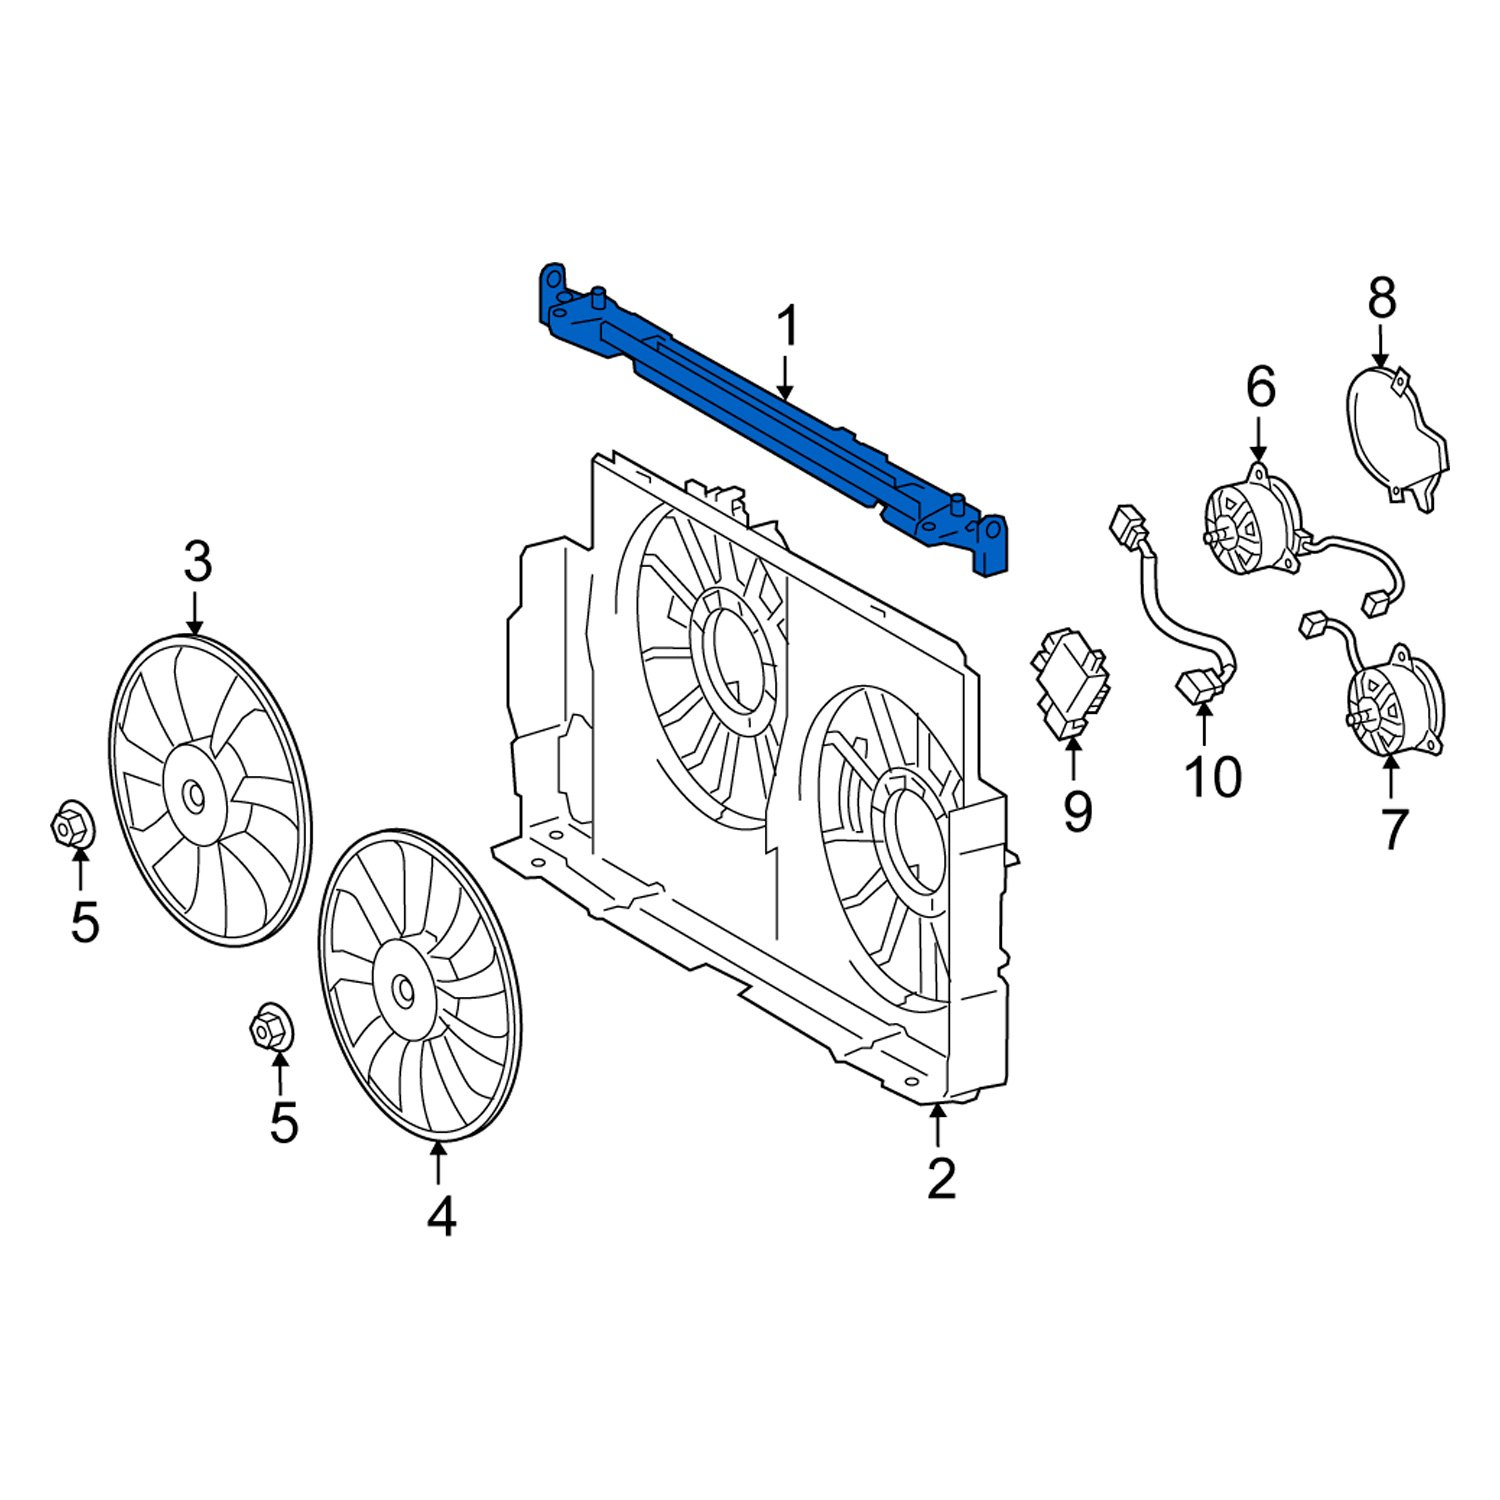 [DIAGRAM_38DE]  Lexus OE 1671236040 - Front Upper Engine Cooling Fan Shroud | Lexus Engine Cooling Diagram |  | CARiD.com